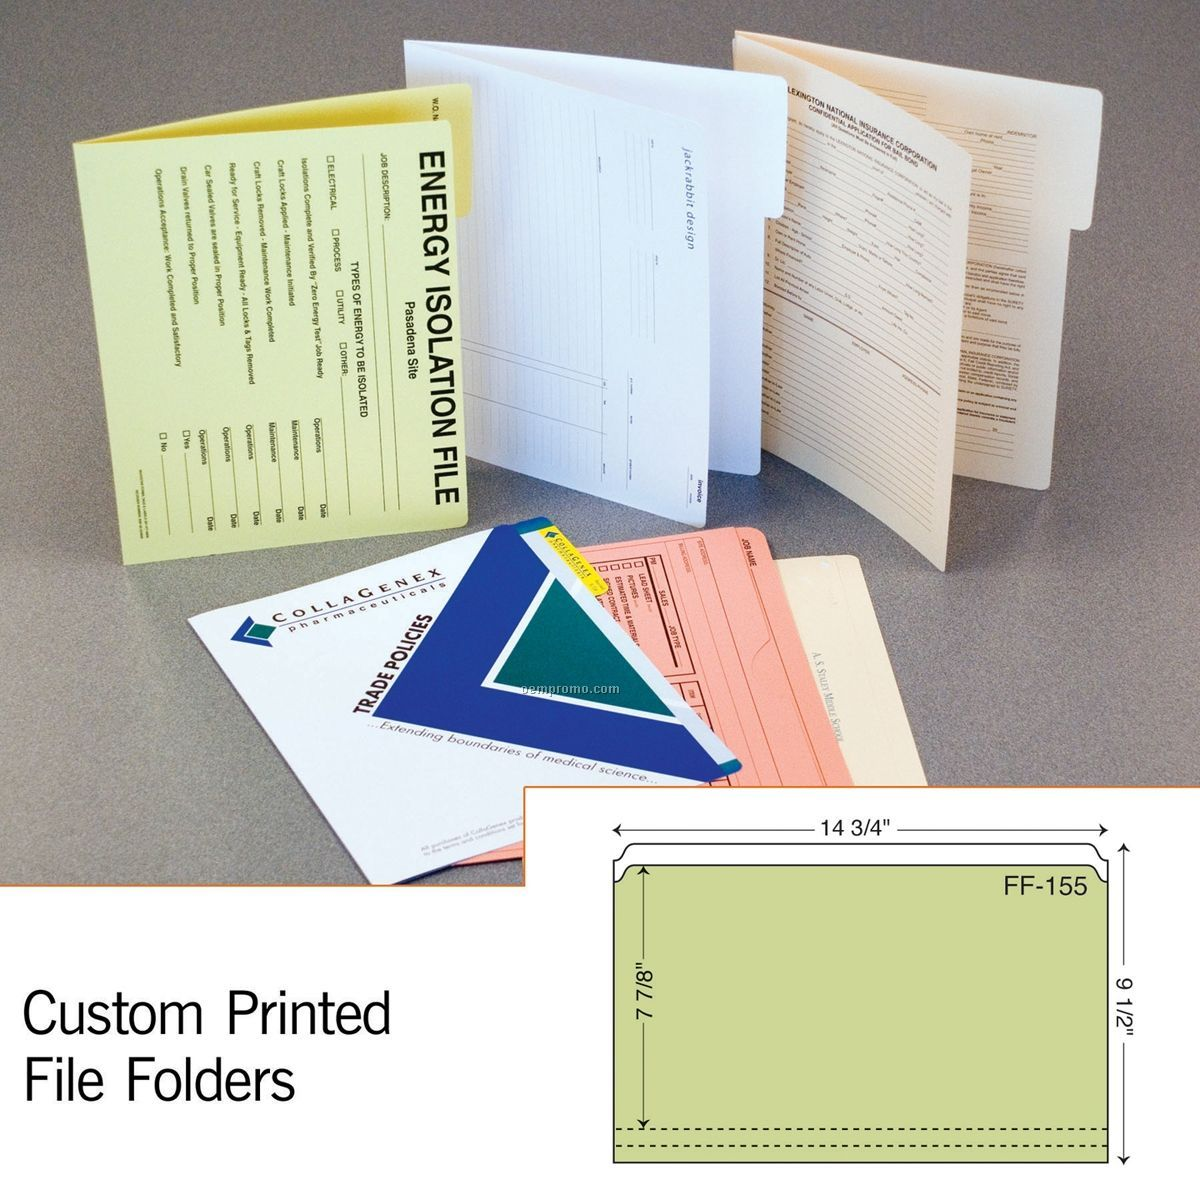 Legal Sized File Folder W/ Full Tab & 2 Scores (1 Color/1 Side)